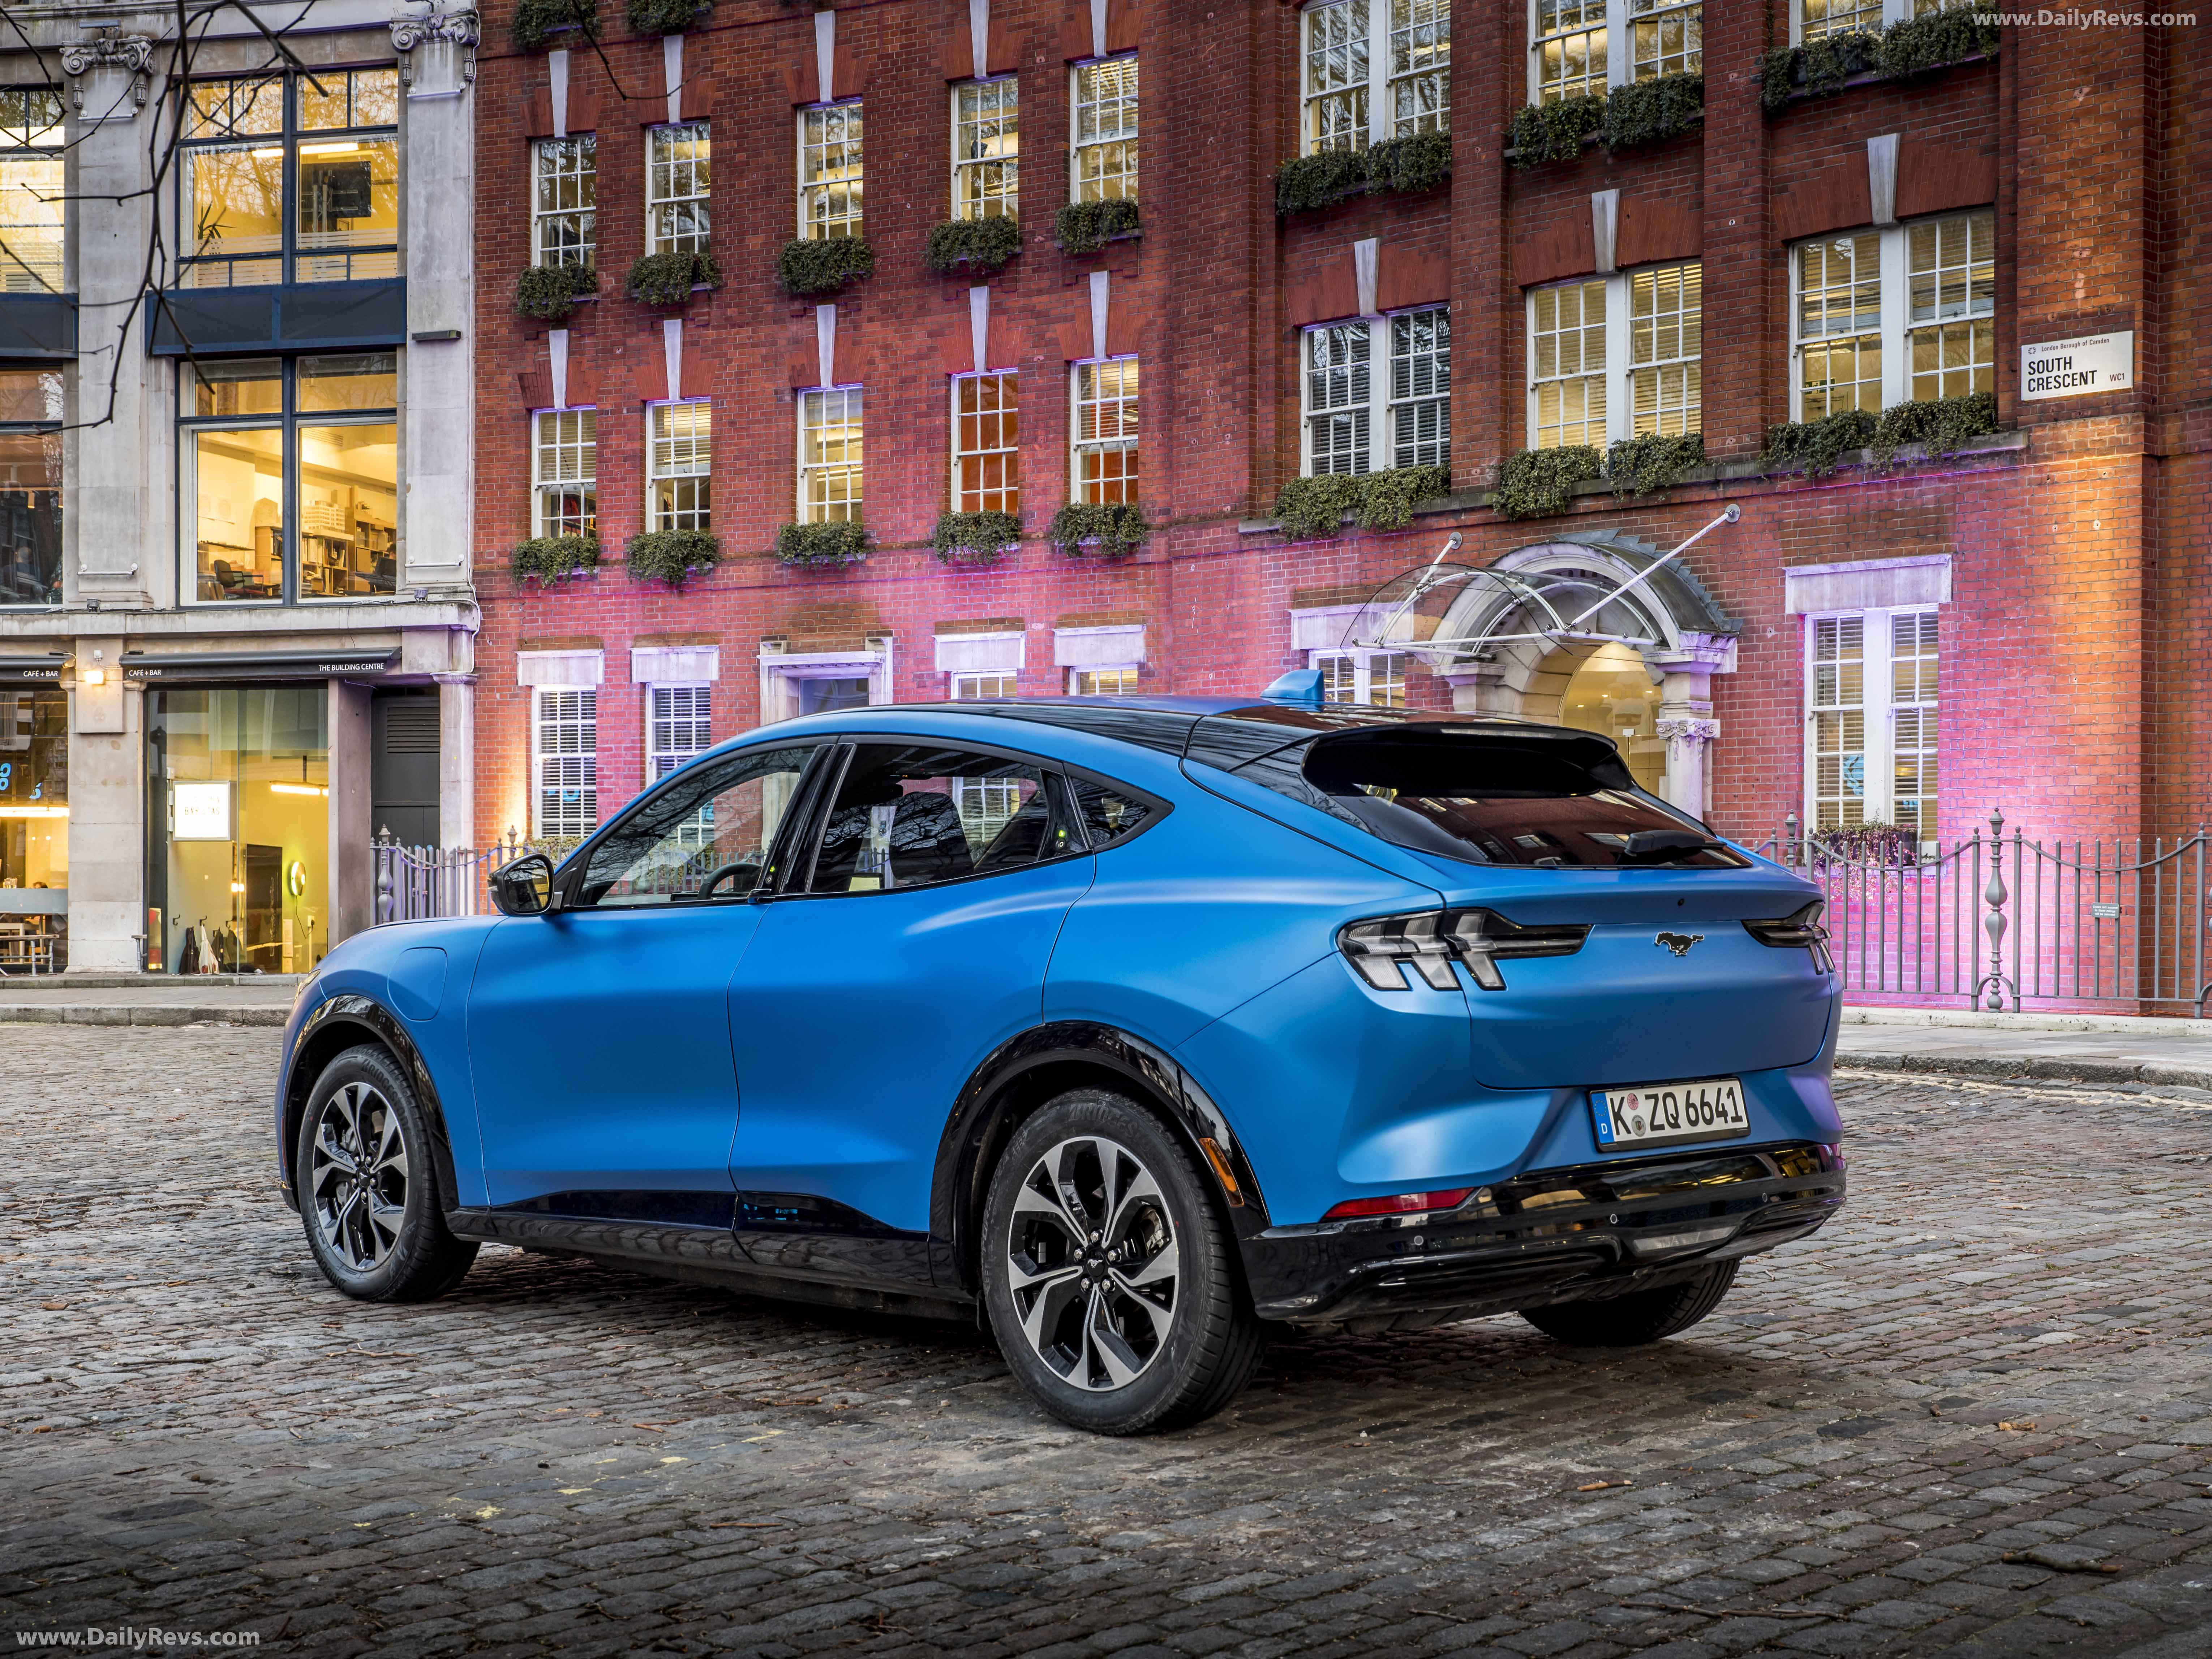 2021 Ford Mustang Mach-E EU - HD Pictures, Videos, Specs ...